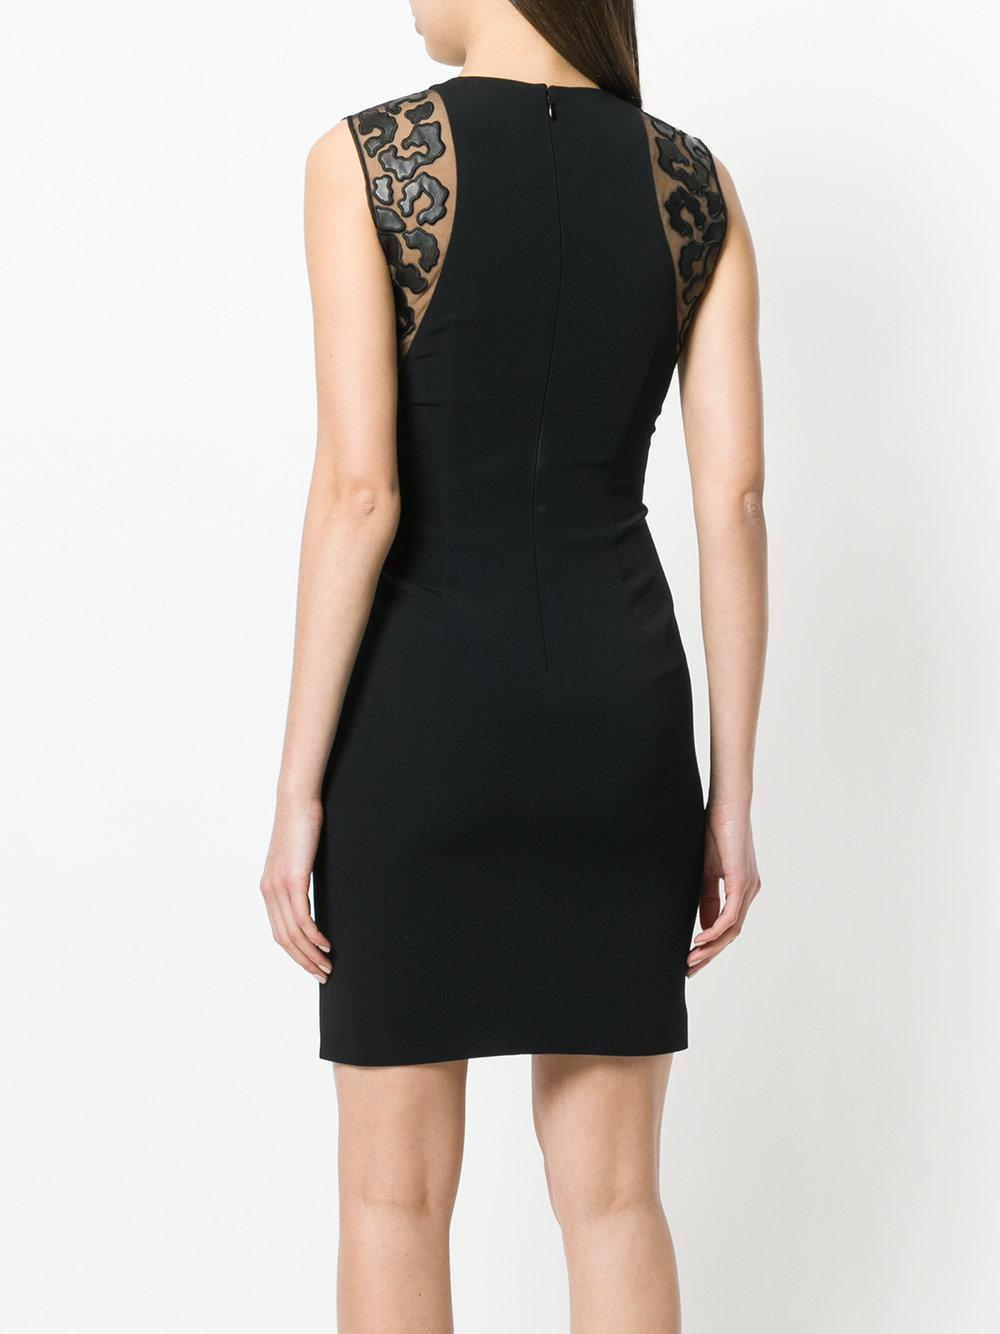 Stella McCartney sheer contrast fitted dress Cheap Sale Clearance Store Clearance Professional Discount Visit New Buy Cheap Buy Outlet Amazon xvwJLRw